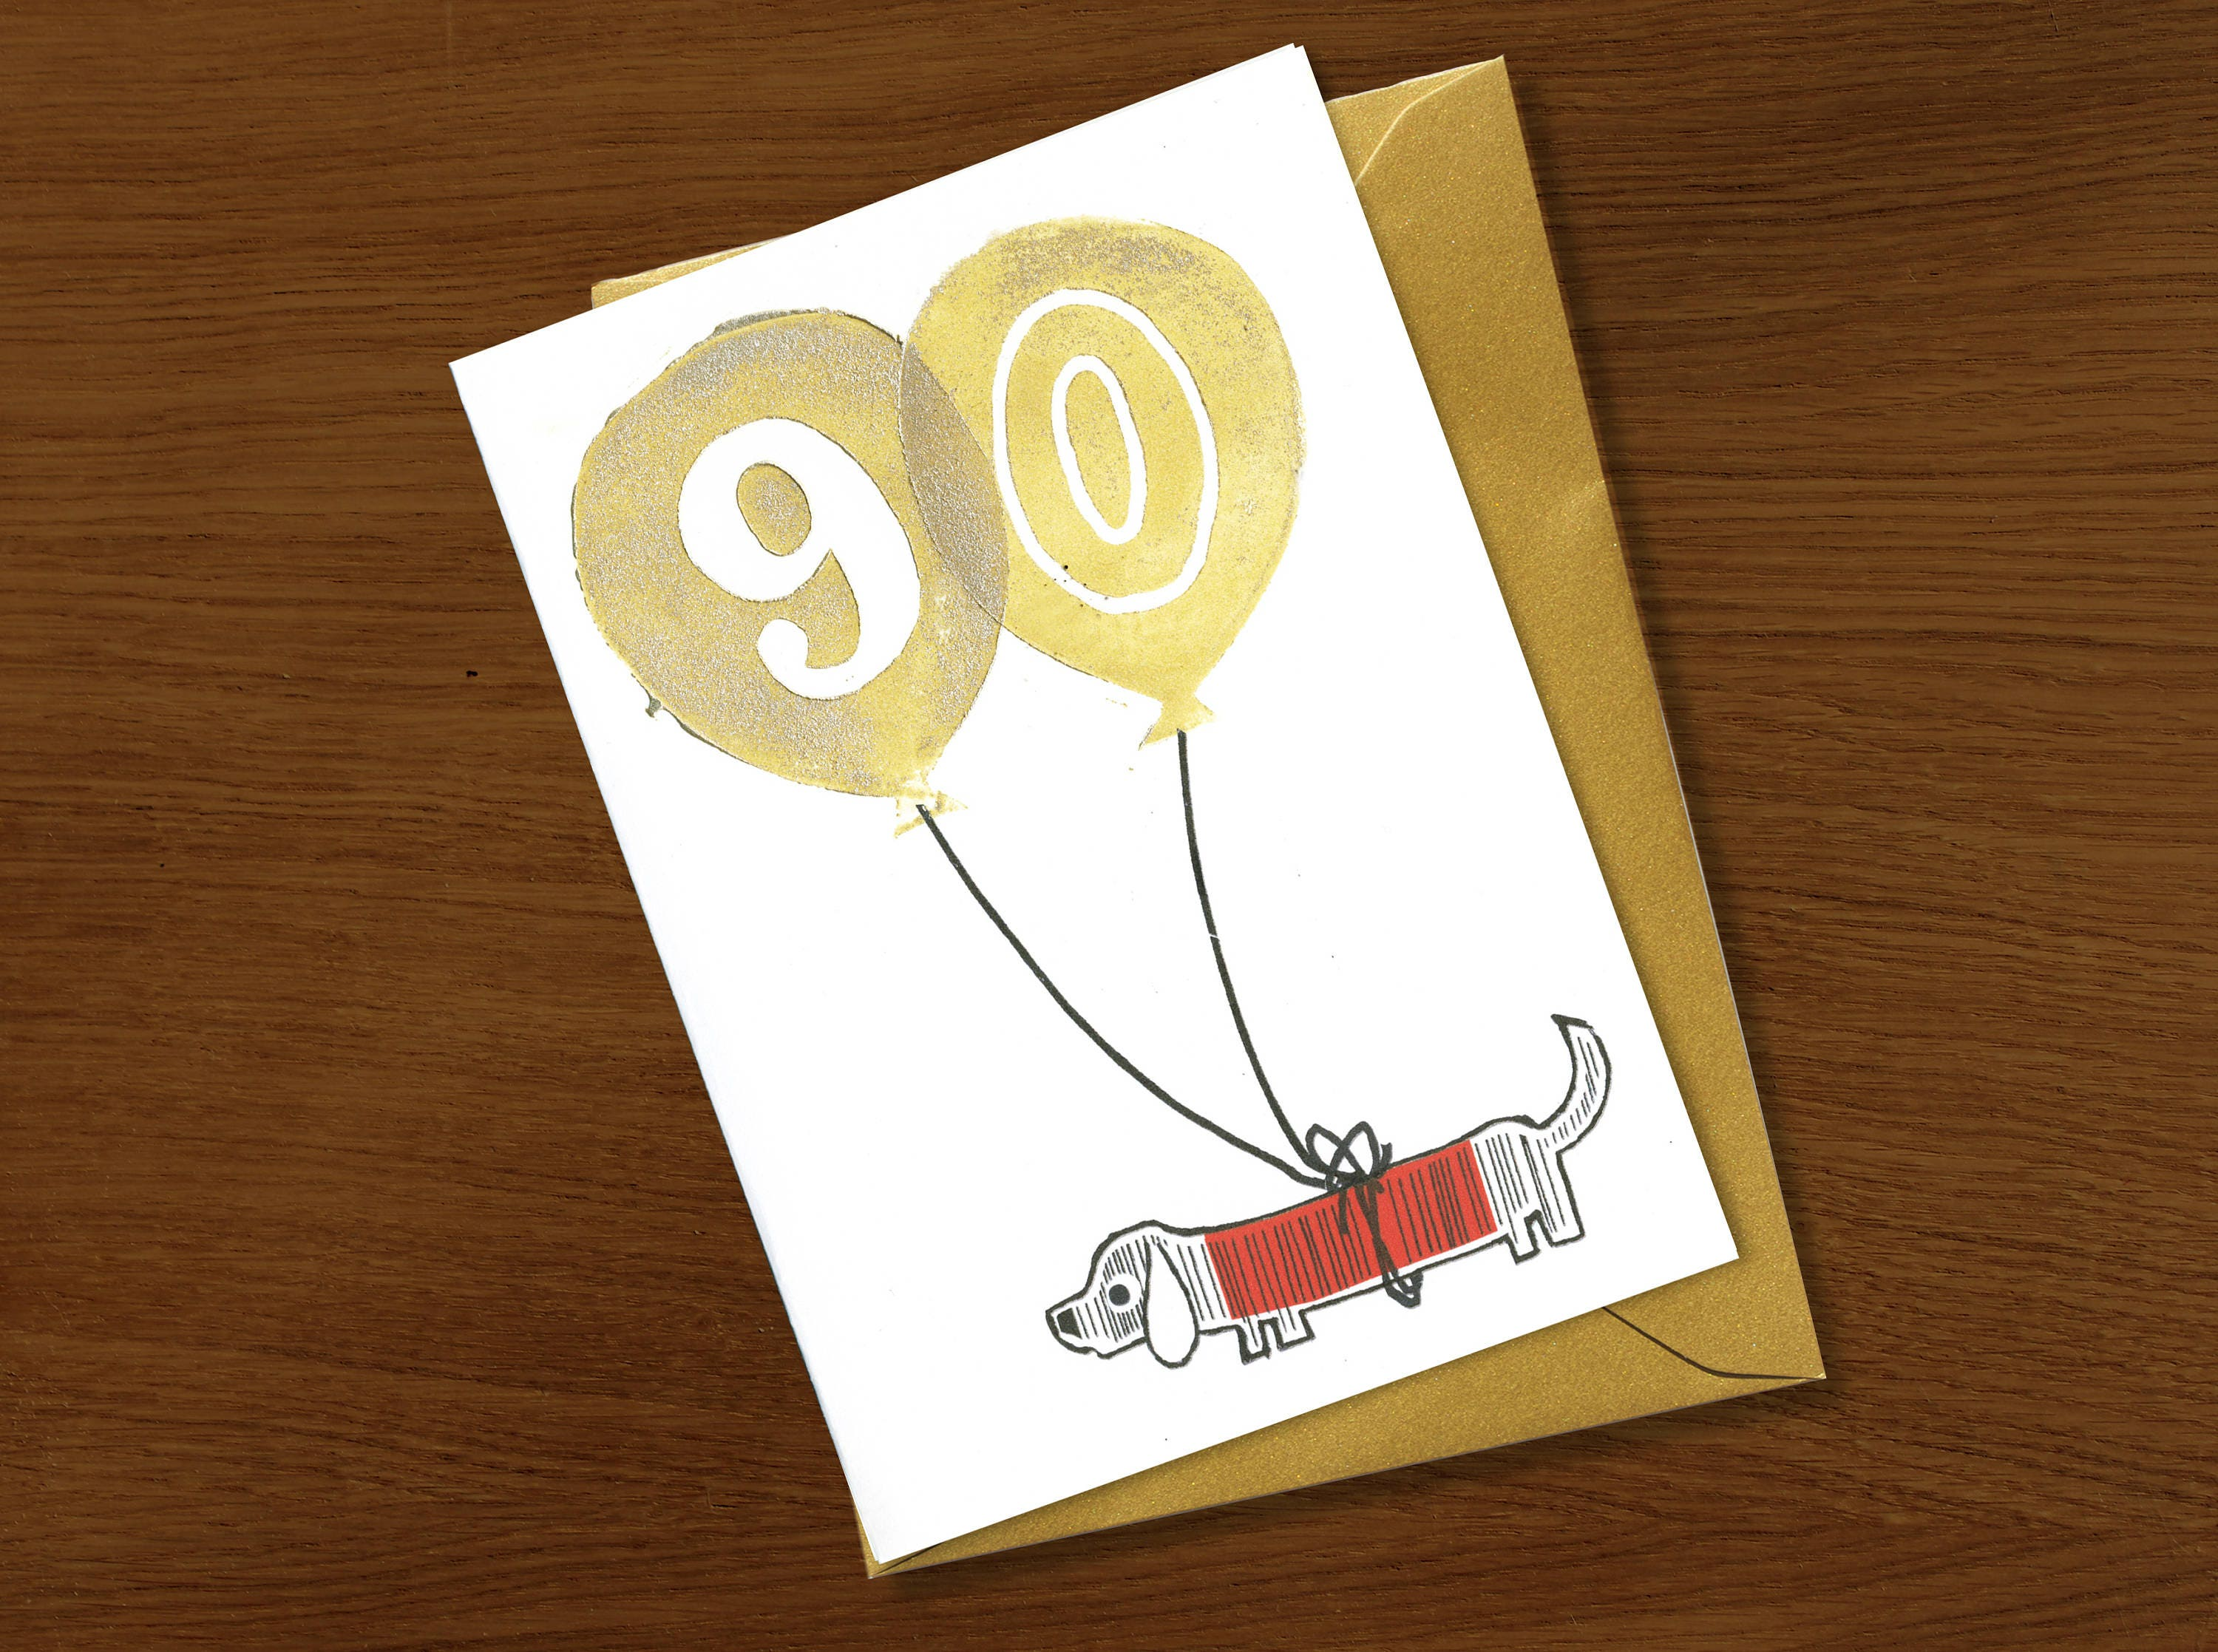 90th birthday card birthday card 90 years special description 90th birthday card birthday card 90 years bookmarktalkfo Image collections